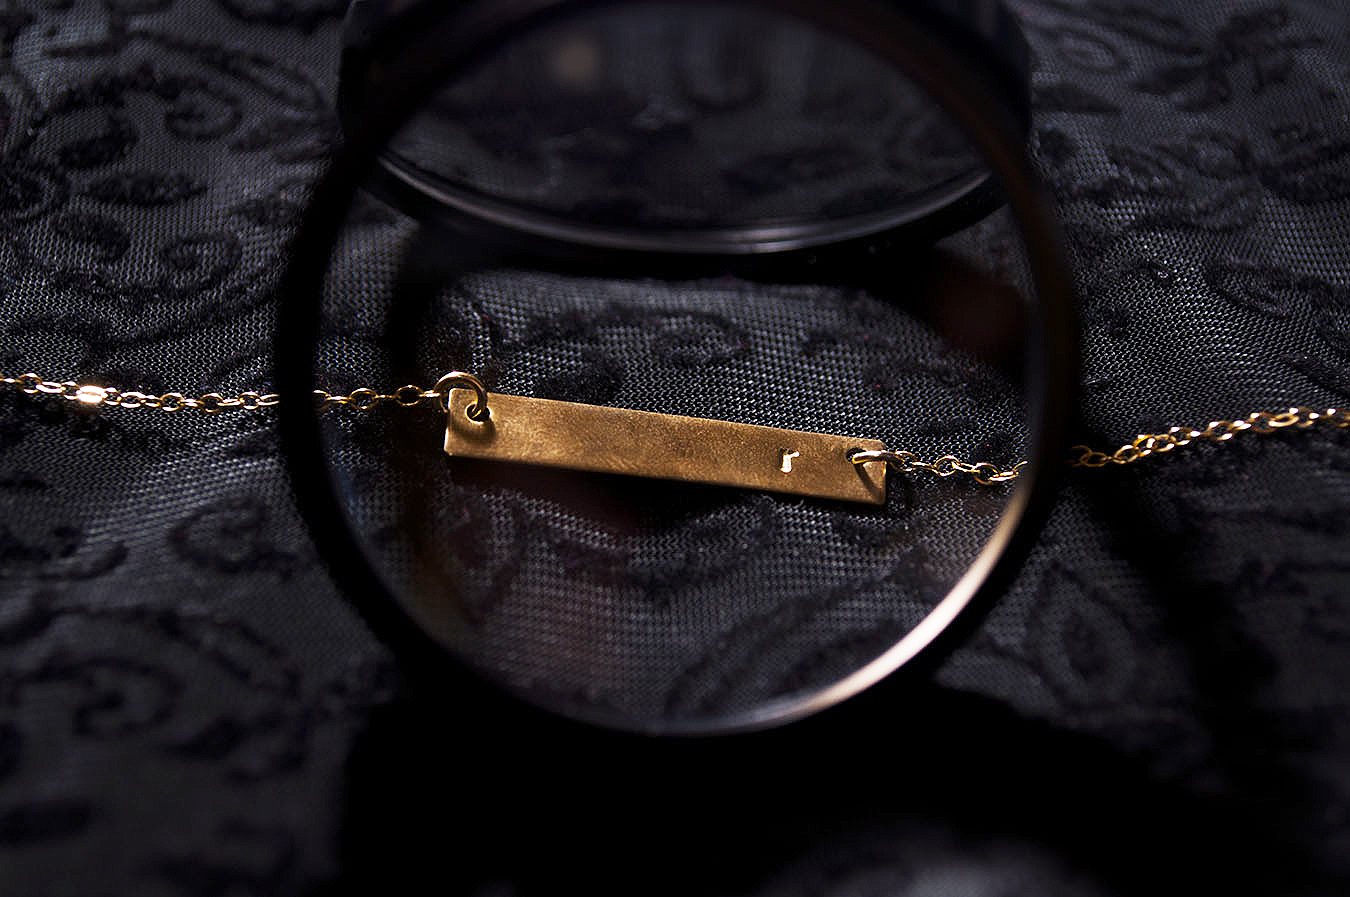 Rebecca_Huang_still_life_photography_dark_velvet_accessories_jewelry_lens_magnifying_reflection_gold_lettered_bar_necklace_chain_floral